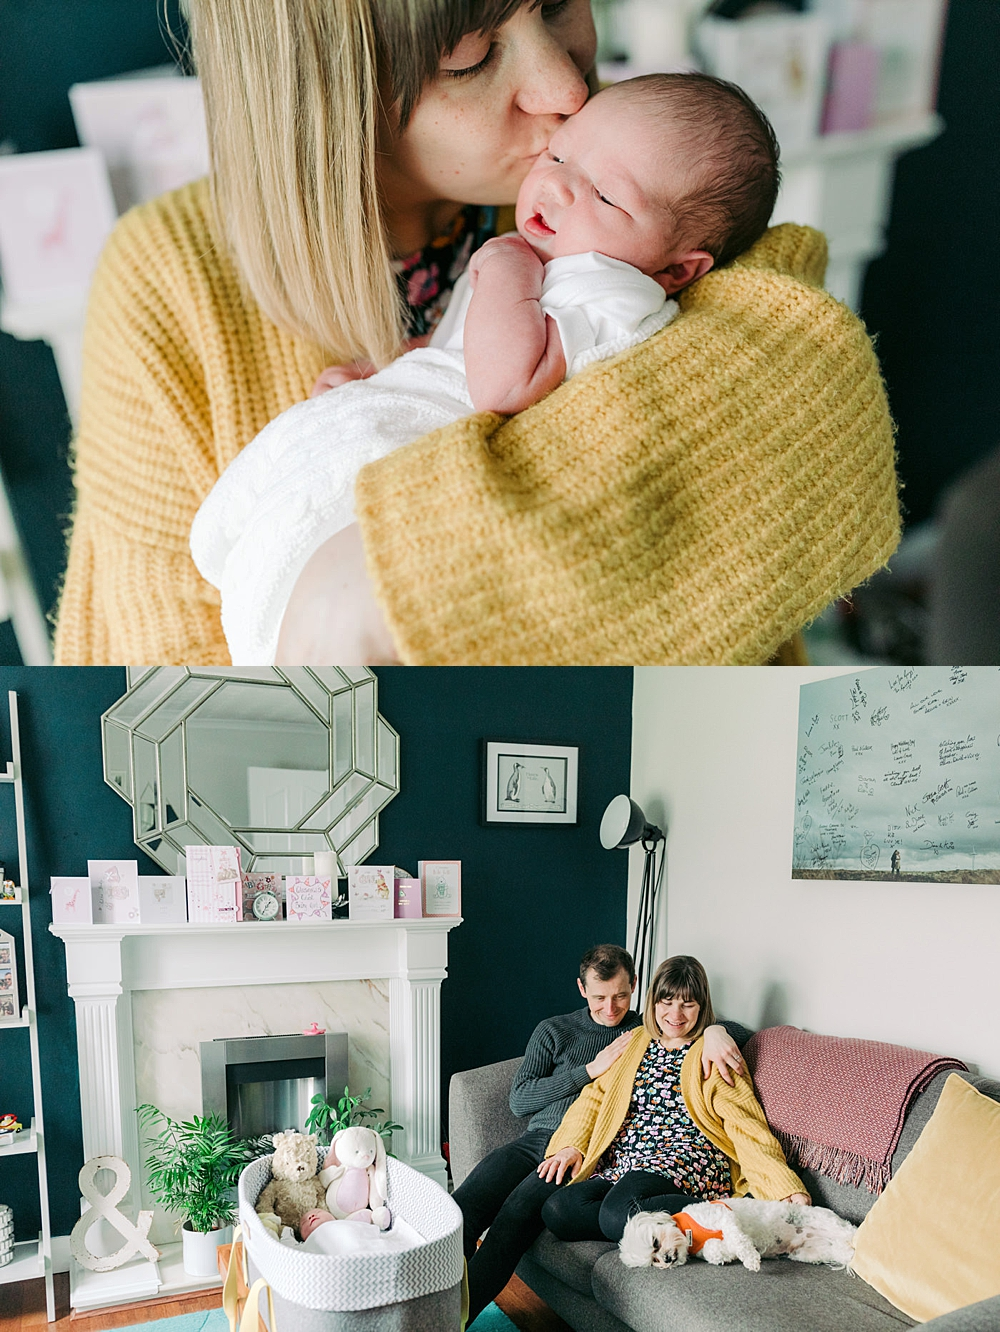 Betty Bluebell,Lifestyle Newborn photography Glasgow,Newborn Photography Glasgow,The Gibsons,baby led newborn photography glasgow,baby photographer glasgow,creative family photography glasgow,glasgow baby and family photographers,